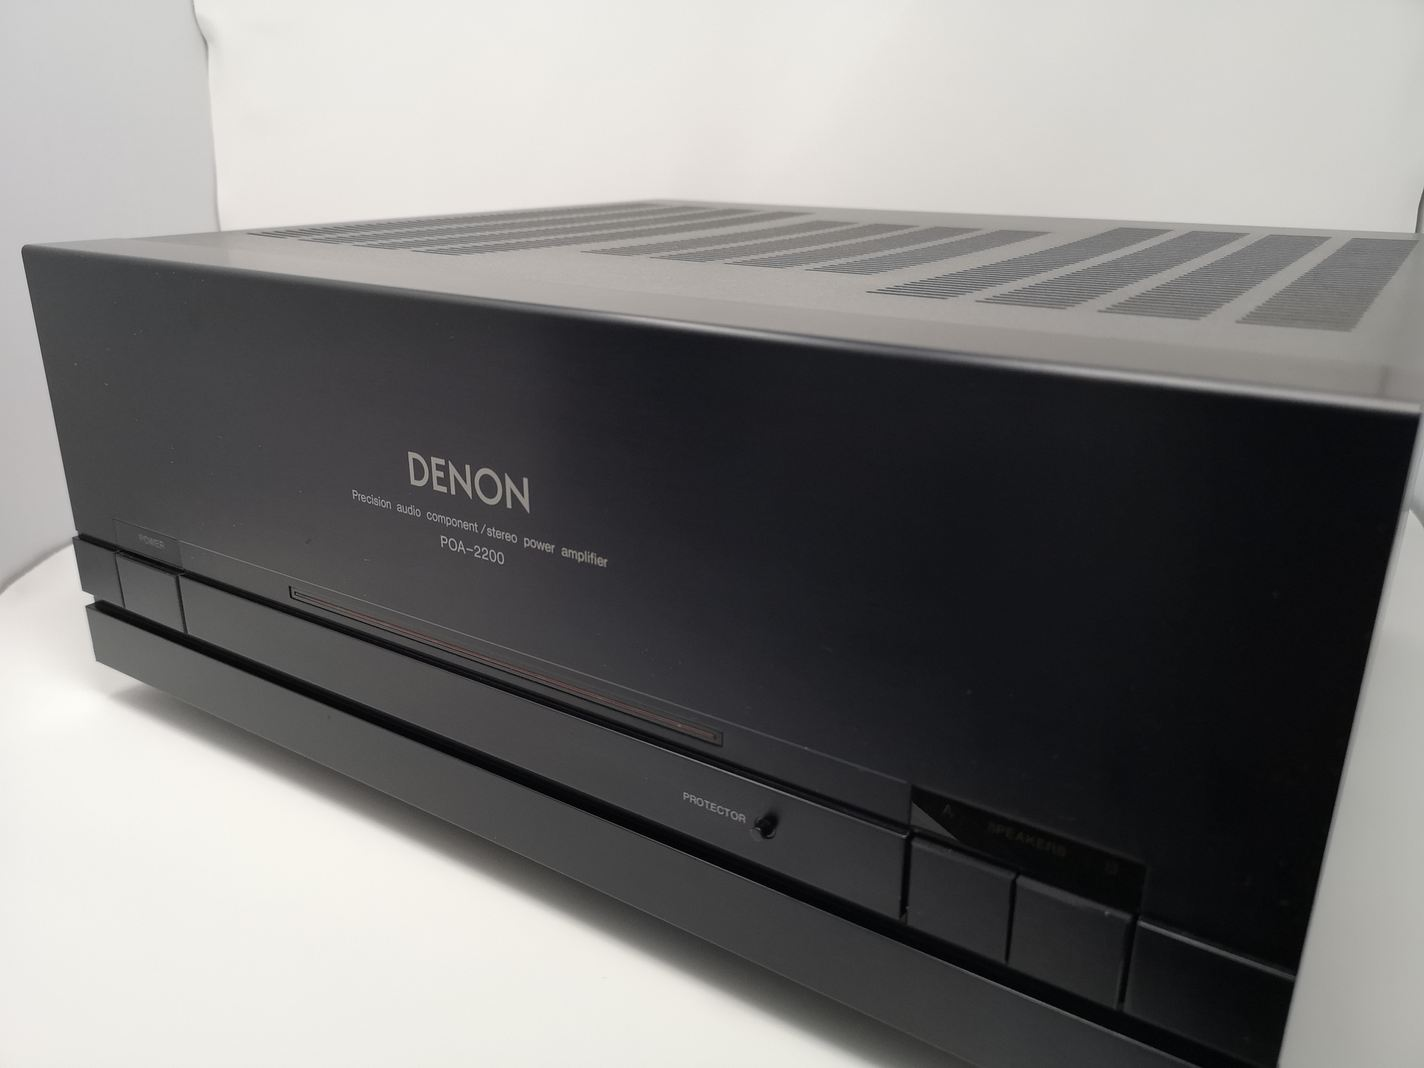 Denon POA2200 HI FI power amplifier